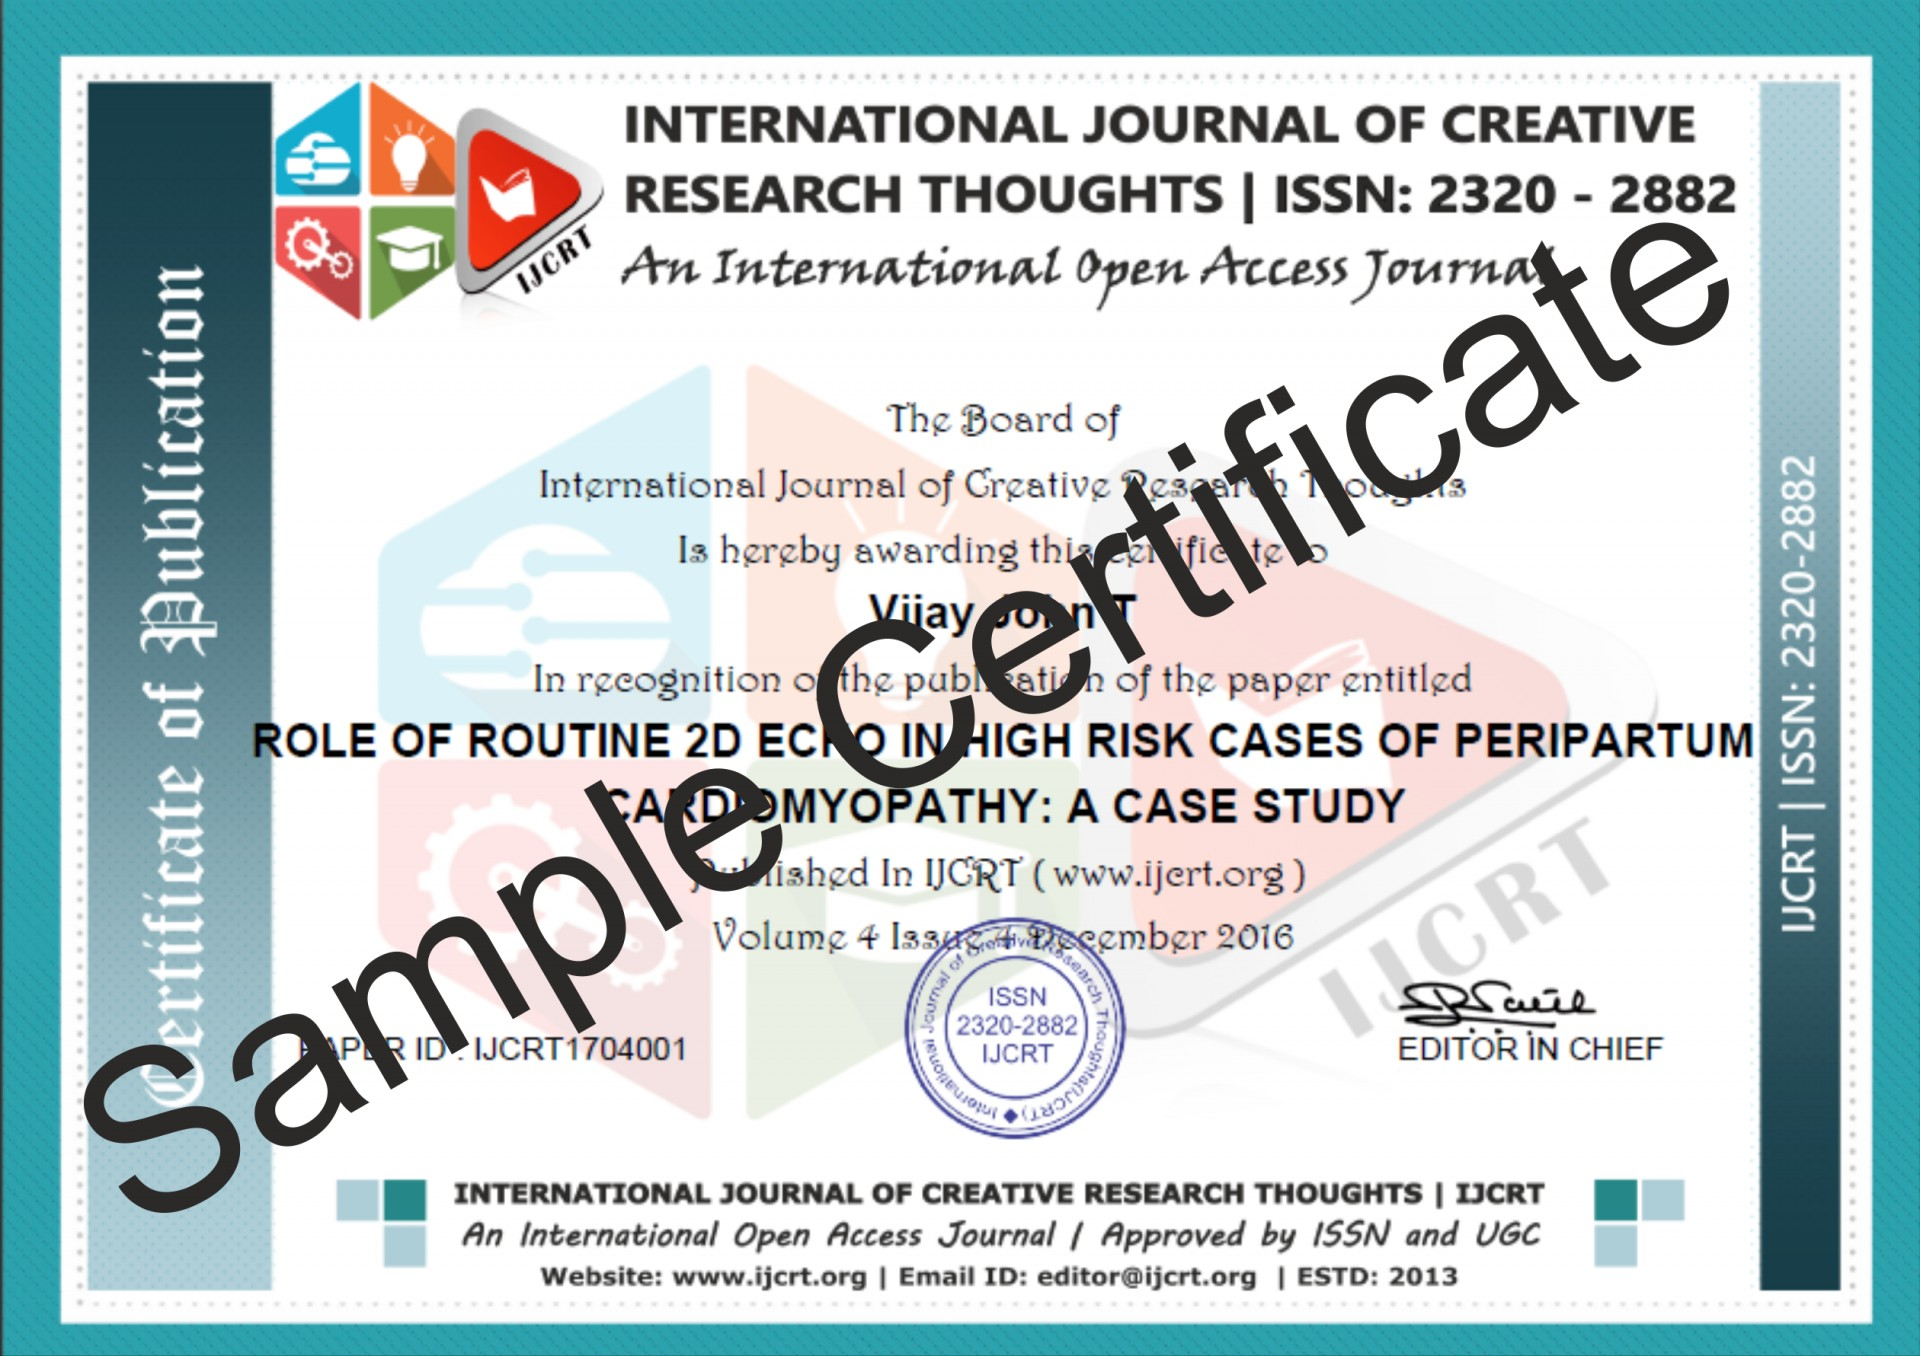 009 Free Online Journals Research Papers Paper Sample Certificate Unique 1920